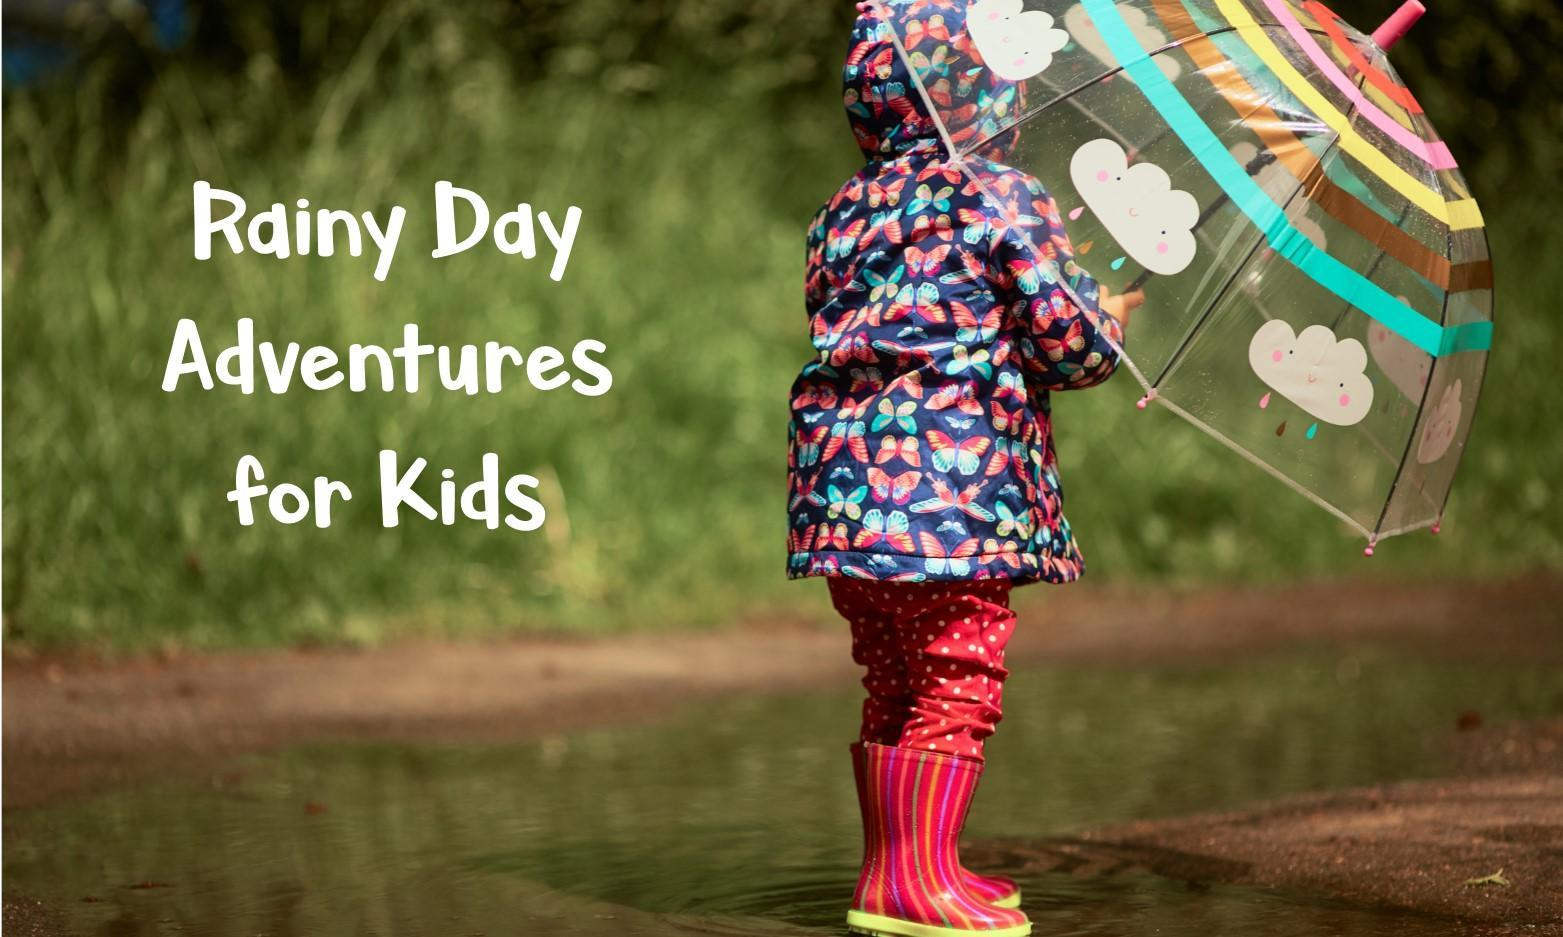 25 Rainy Day Adventures for Kids